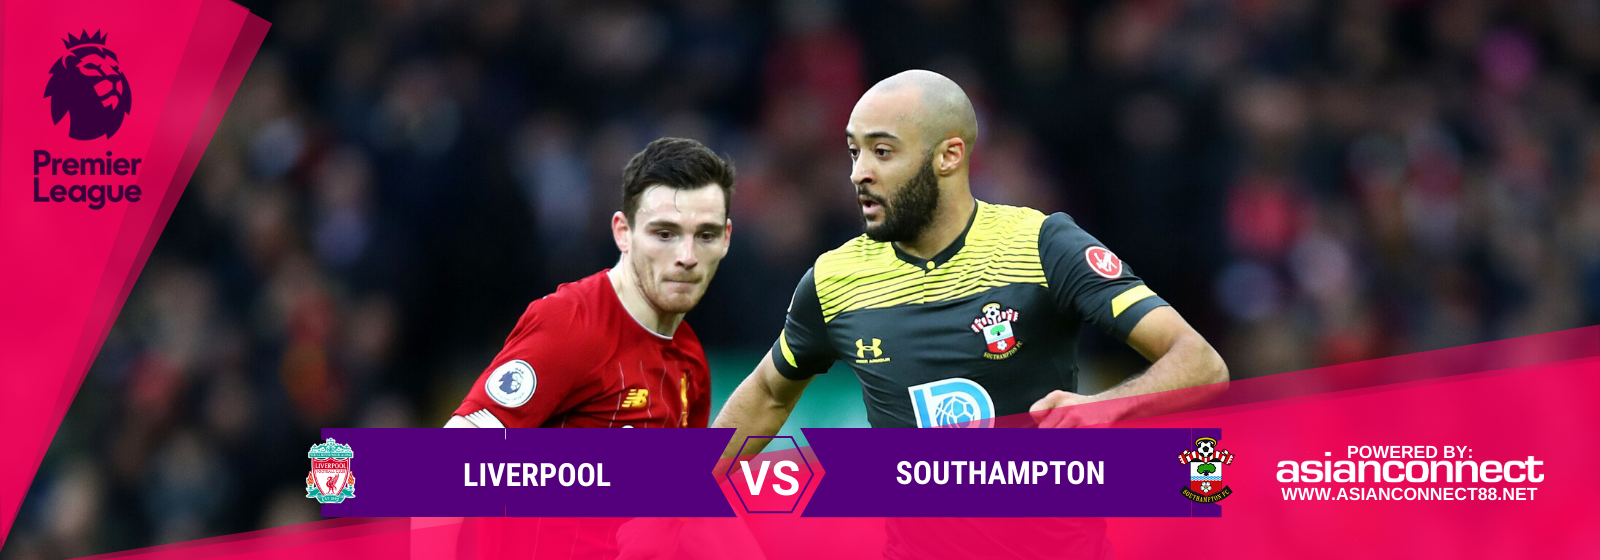 Asianconnect:Liverpool vs Southampton Odds for February 01, 2020